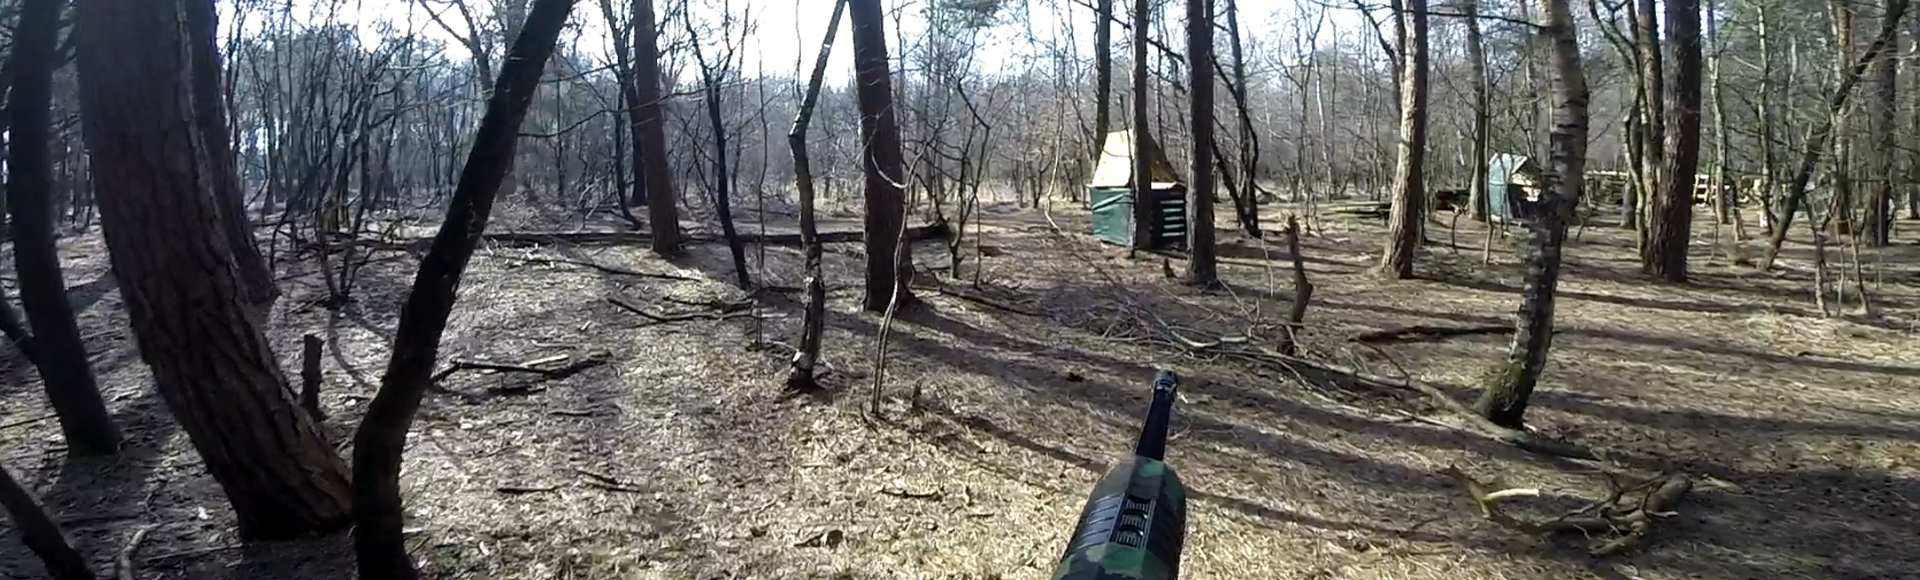 First-person airsoft videos